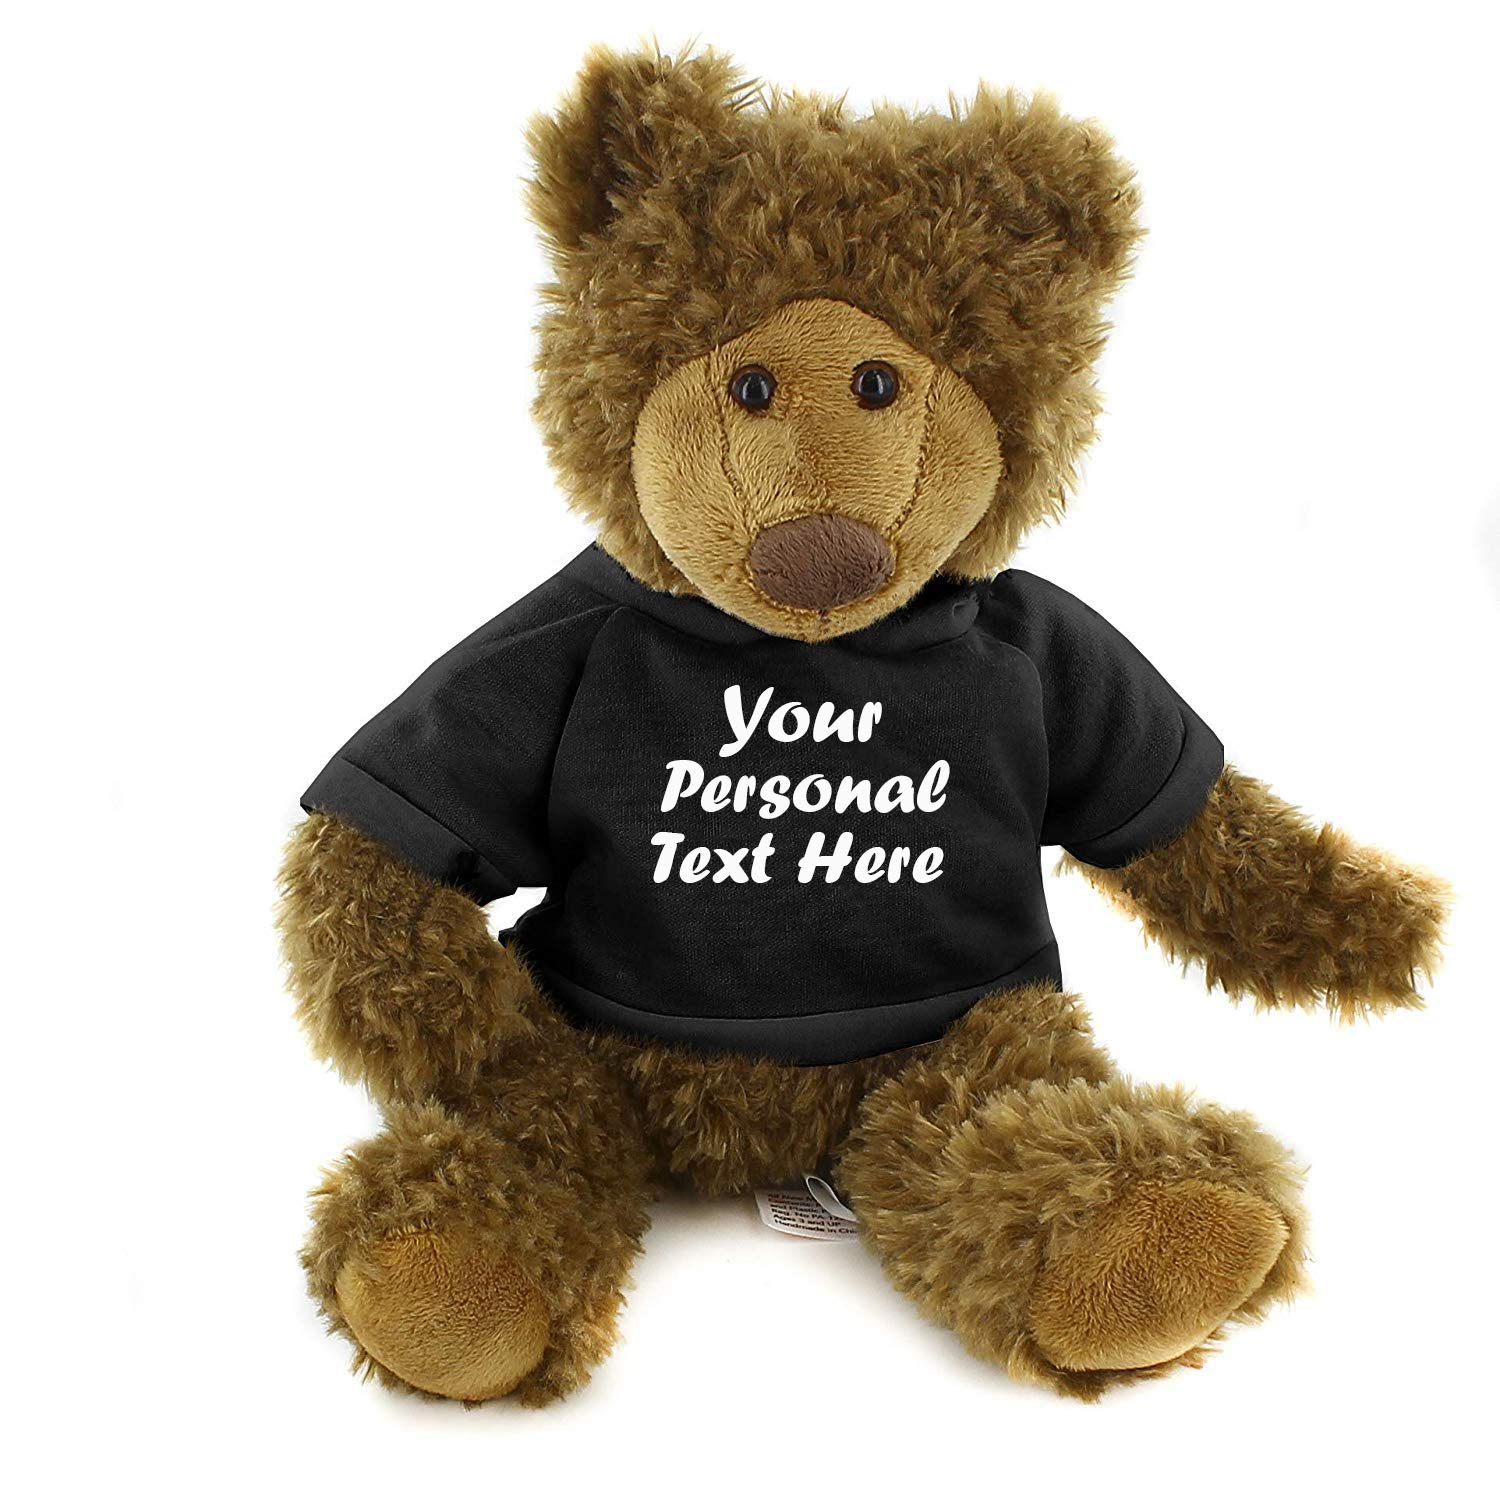 Plushland Adorable Frankie Bear 12 Inches, Stuffed Animal Personalized Gift - Great Present for Mothers Day Valentine Day Graduation Day Birthday Christmas - Custom Text on Hoodie (Black)